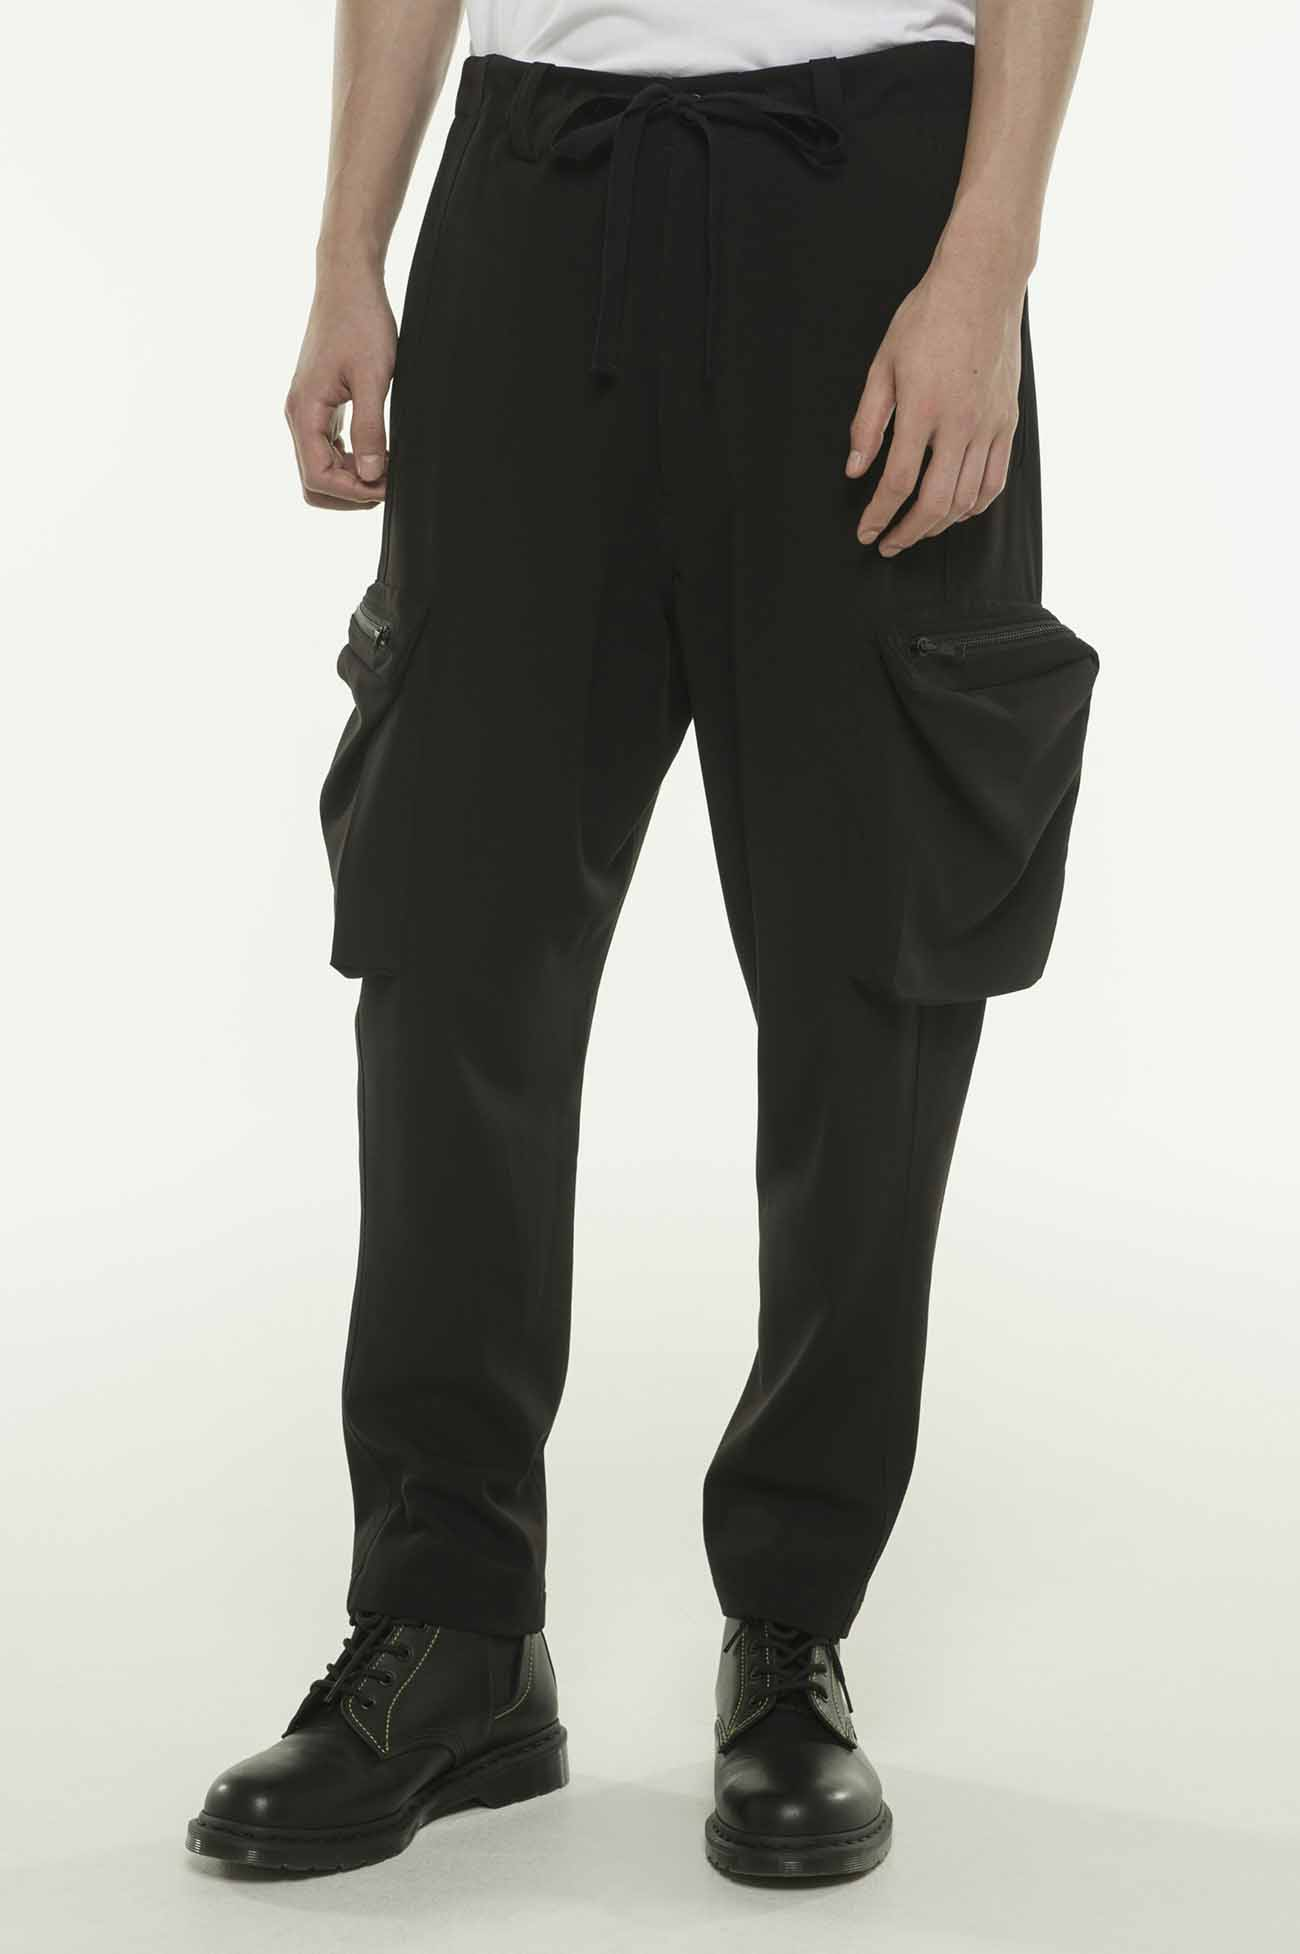 Pe/Rayon Gabardine Stretch Tactical Cargo Pants